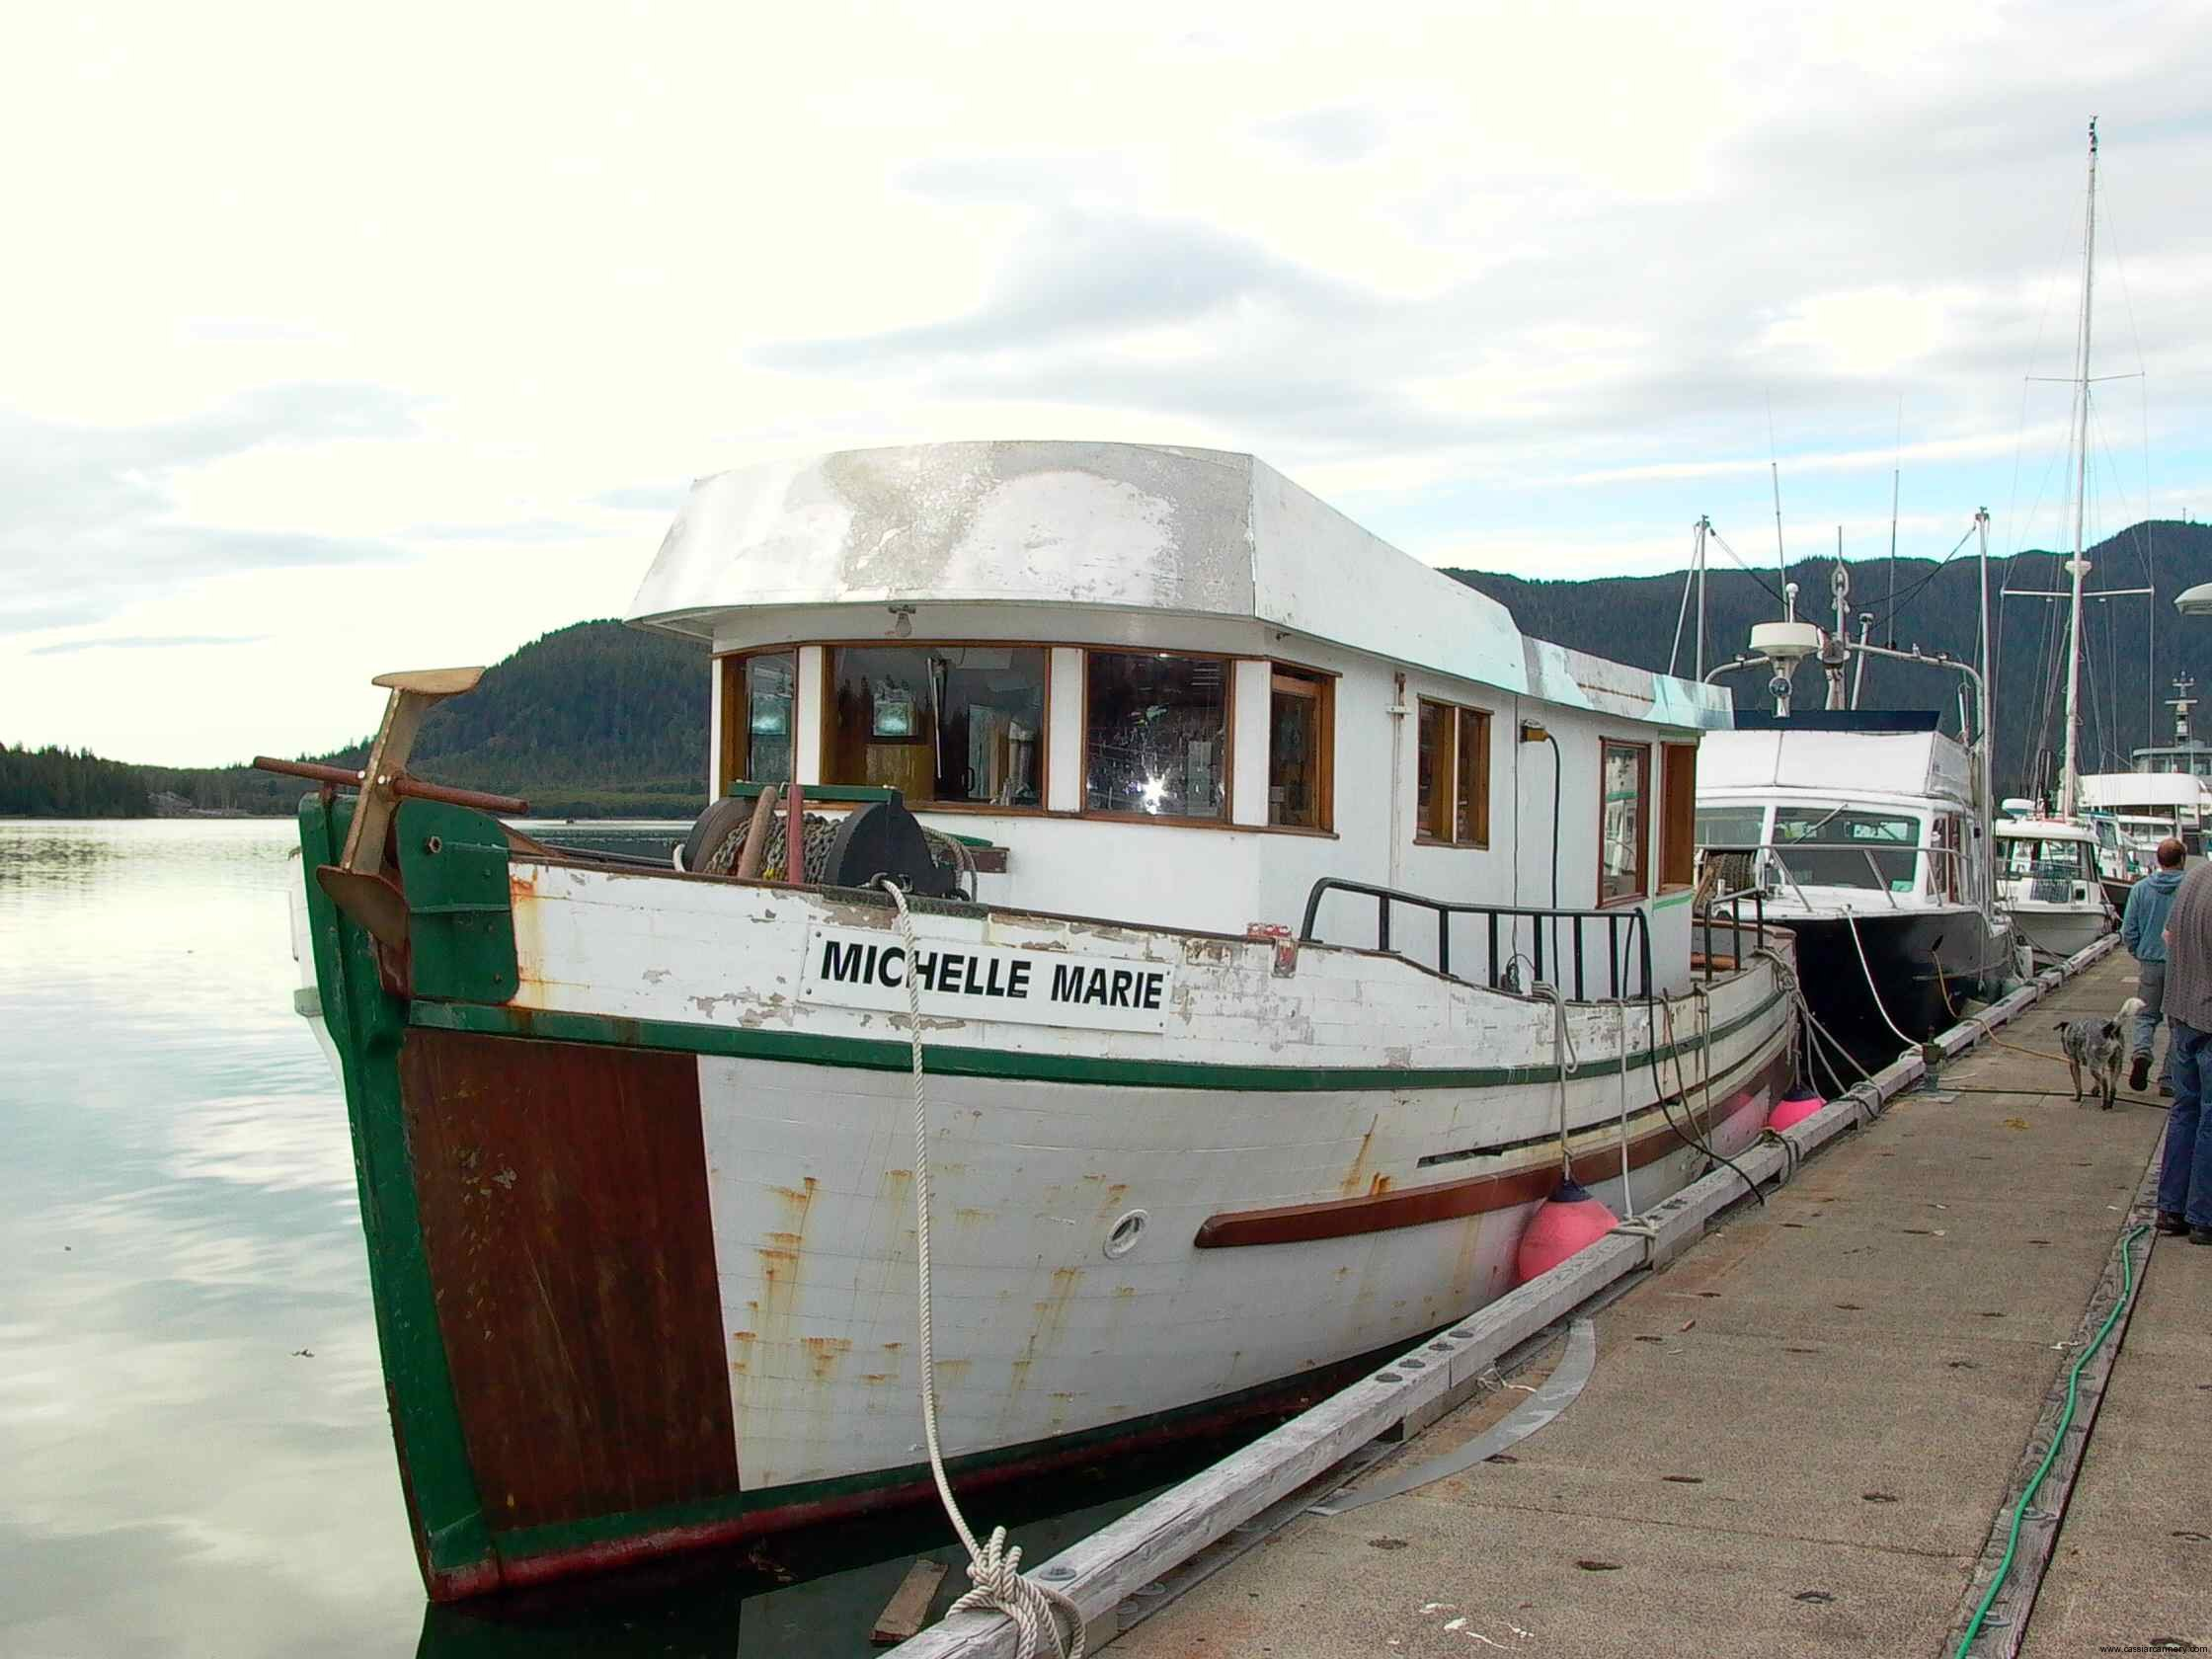 Cassiar Cannery - Poseidon Marine - Michelle Marie - front view of the extension